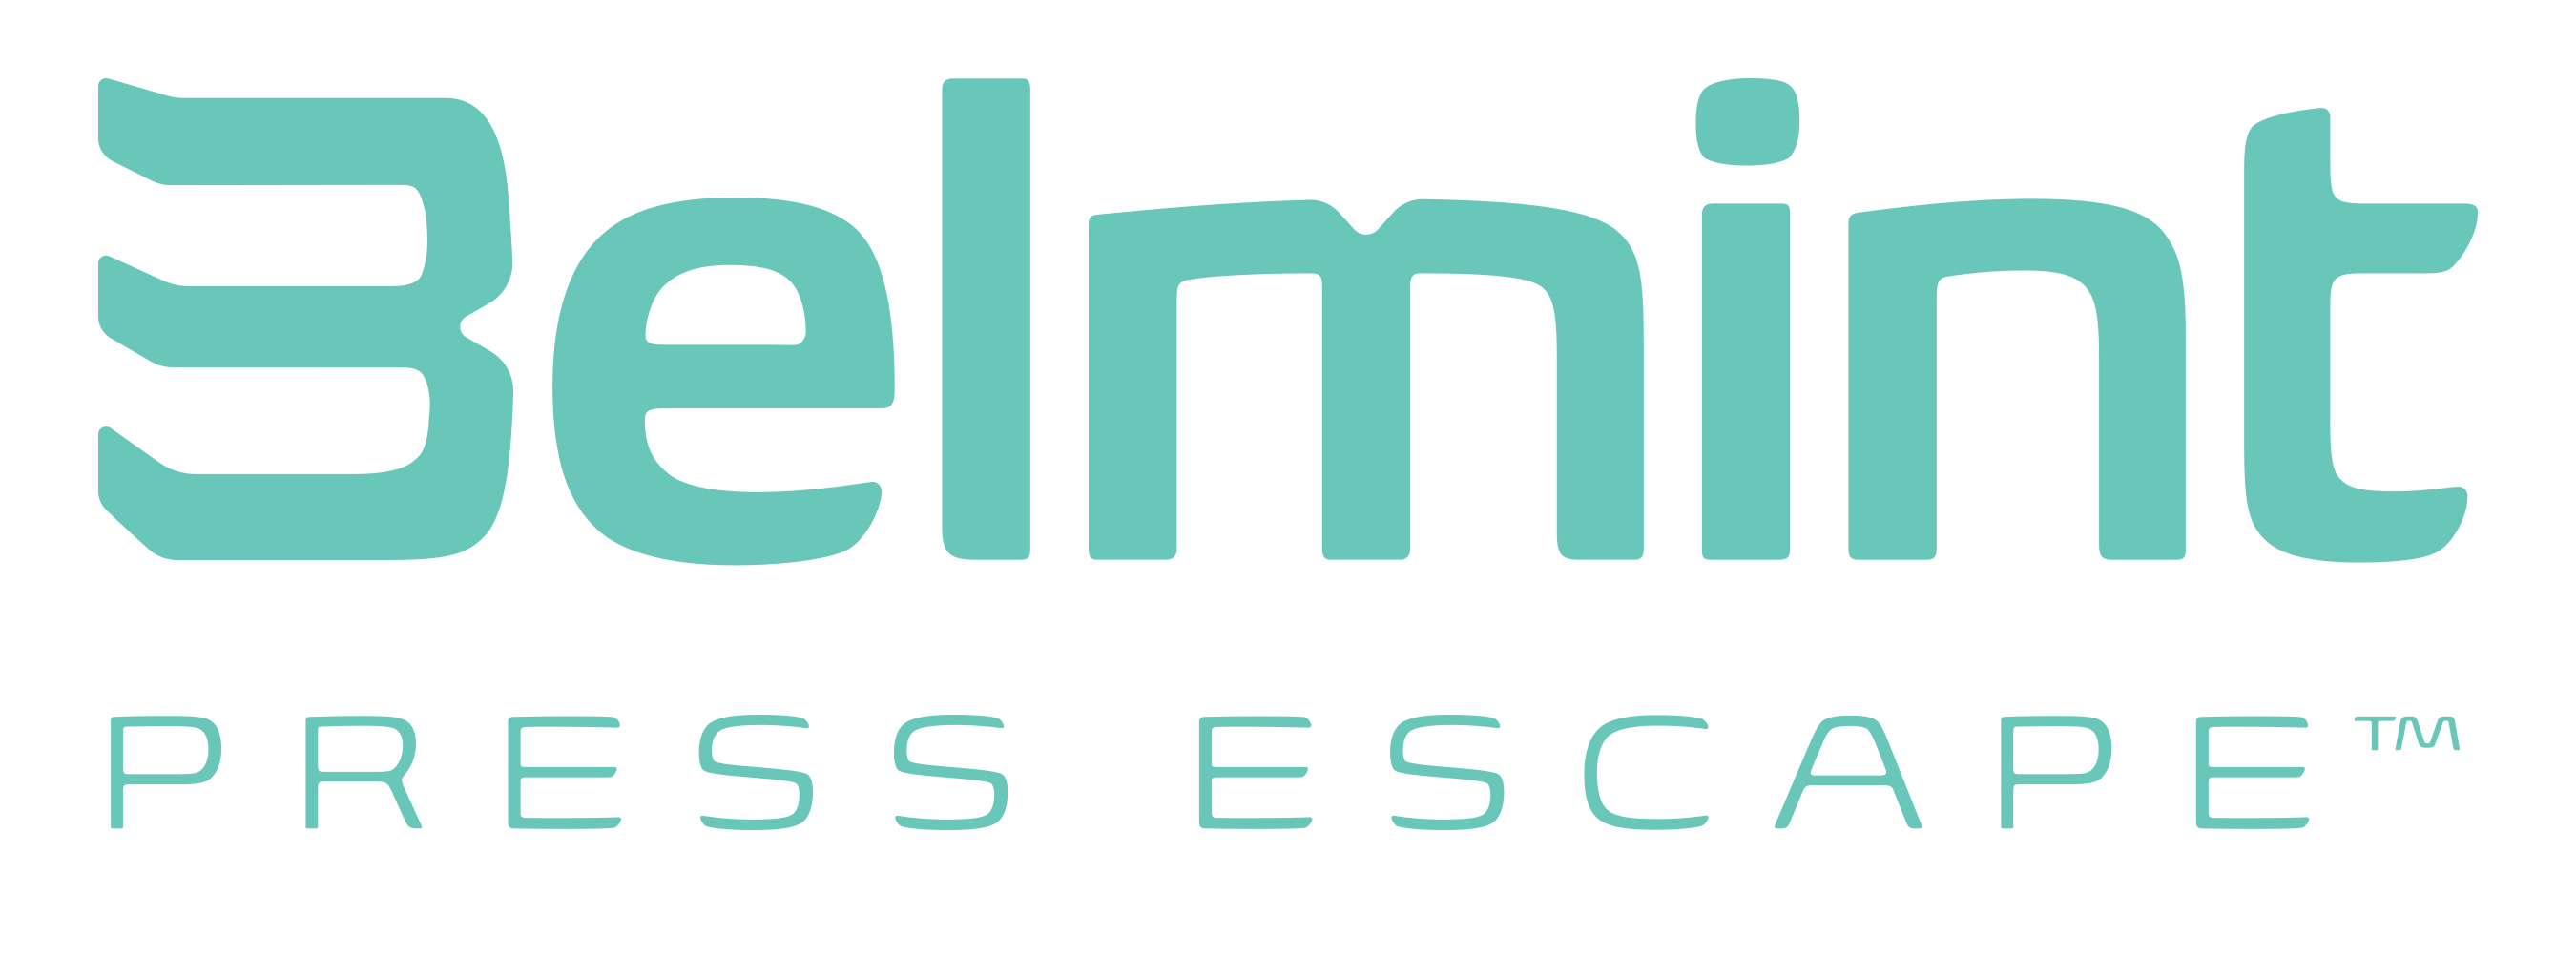 Belmint - Press Escape - logo